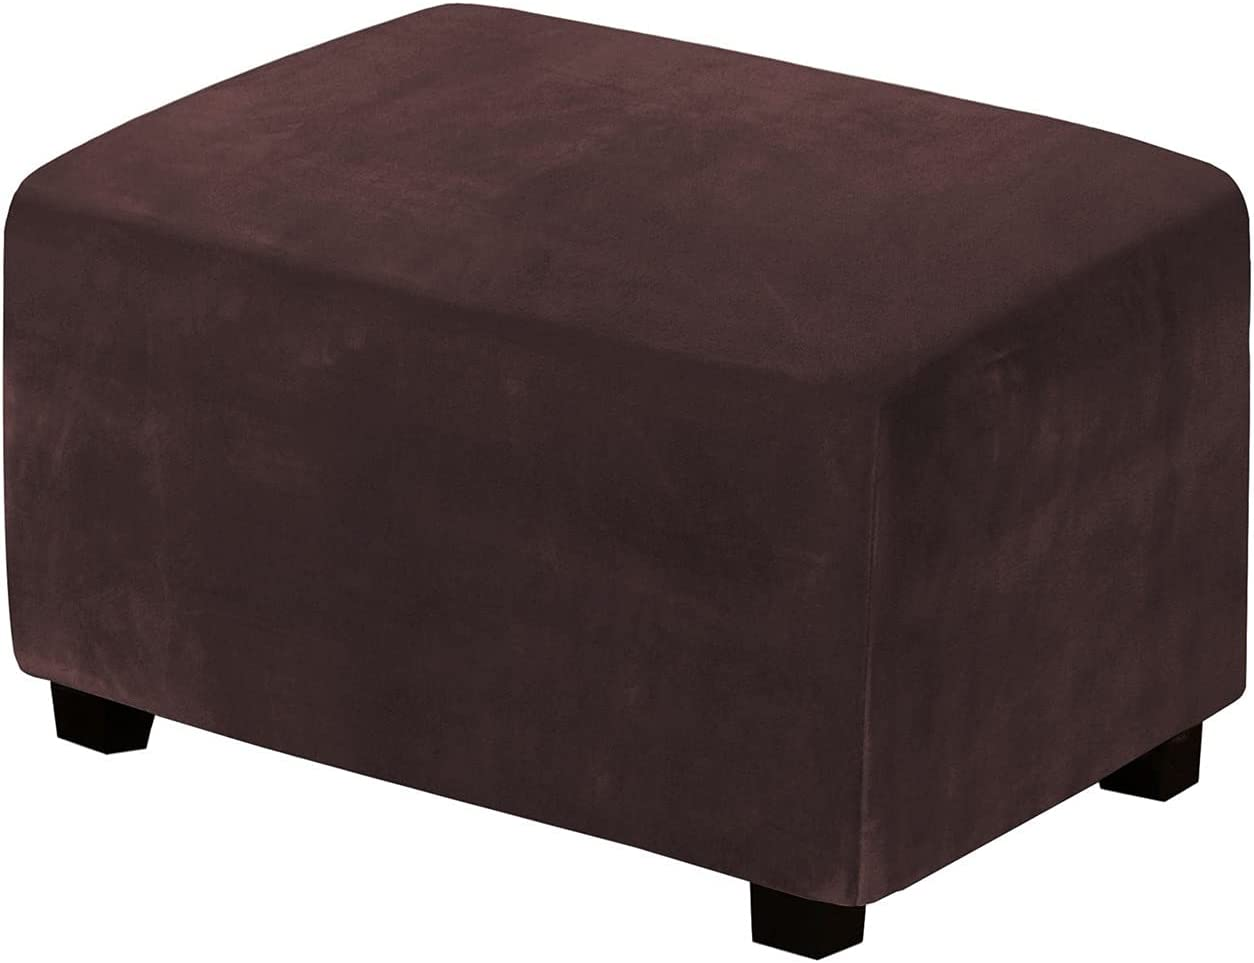 YXLJC Velvet Ottoman Max 90% OFF Slipcovers Form Lowest price challenge Remo Fit Footrest Rectangle